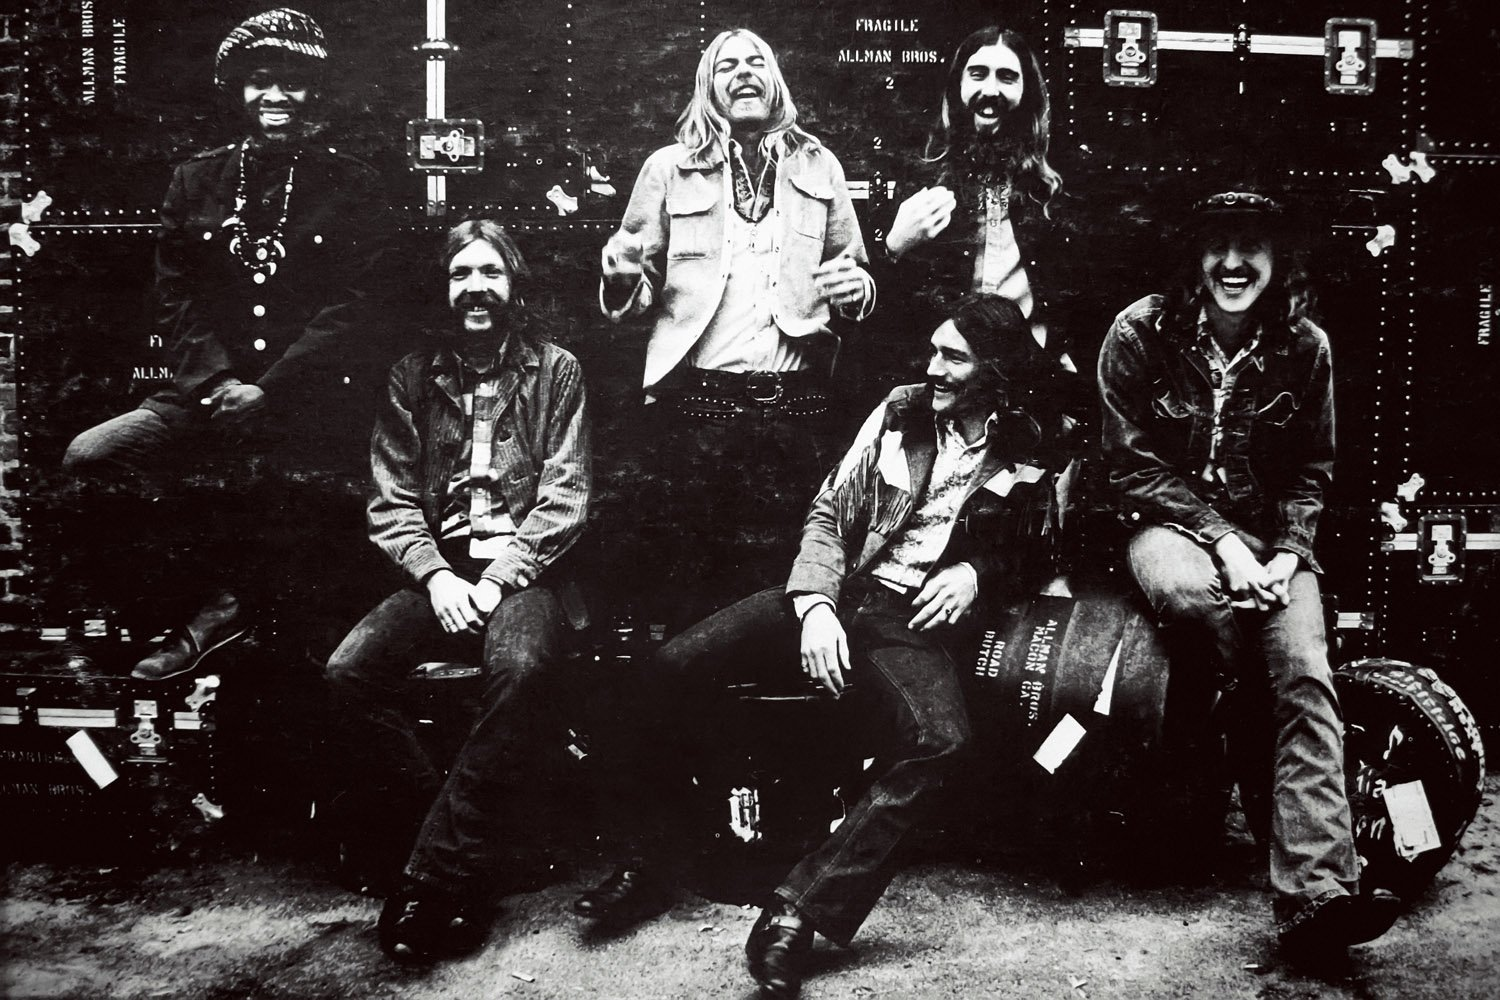 The Allman Brothers Band Classic Rock Star Bandポスター 24x36 inches B01N99SY2Z24x36 inches